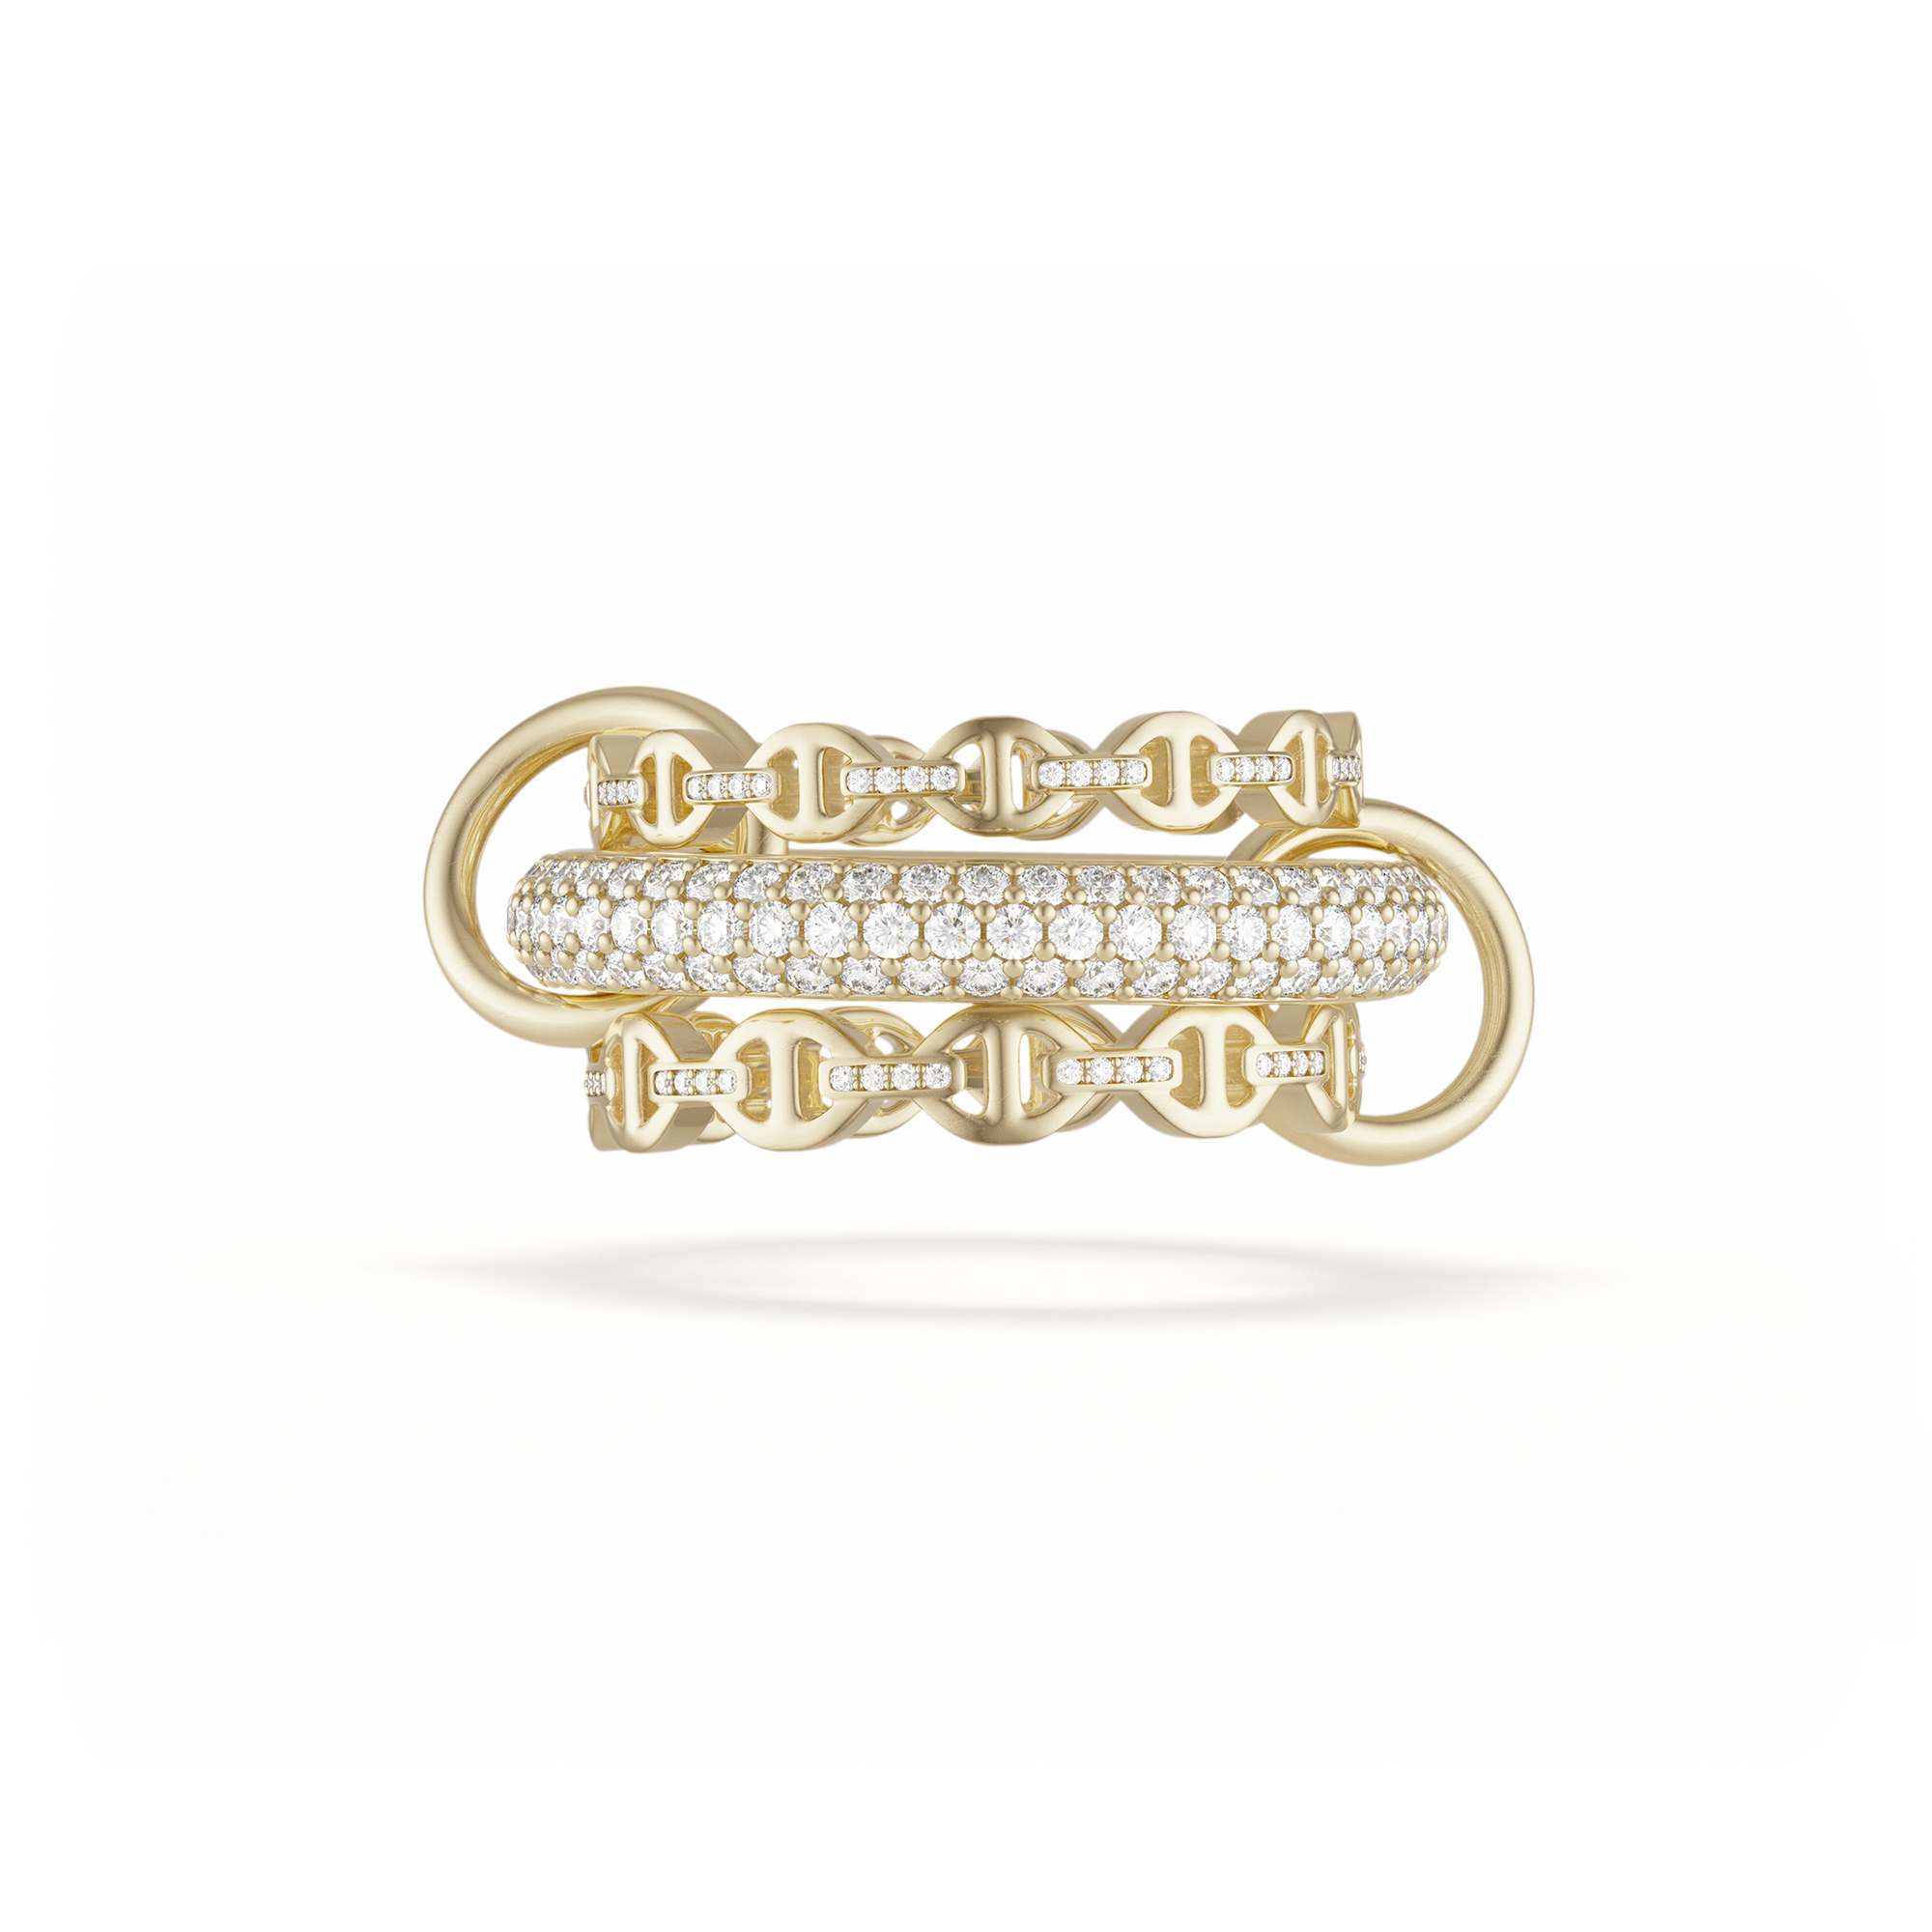 MICRO DAME SK GOLD PAVE